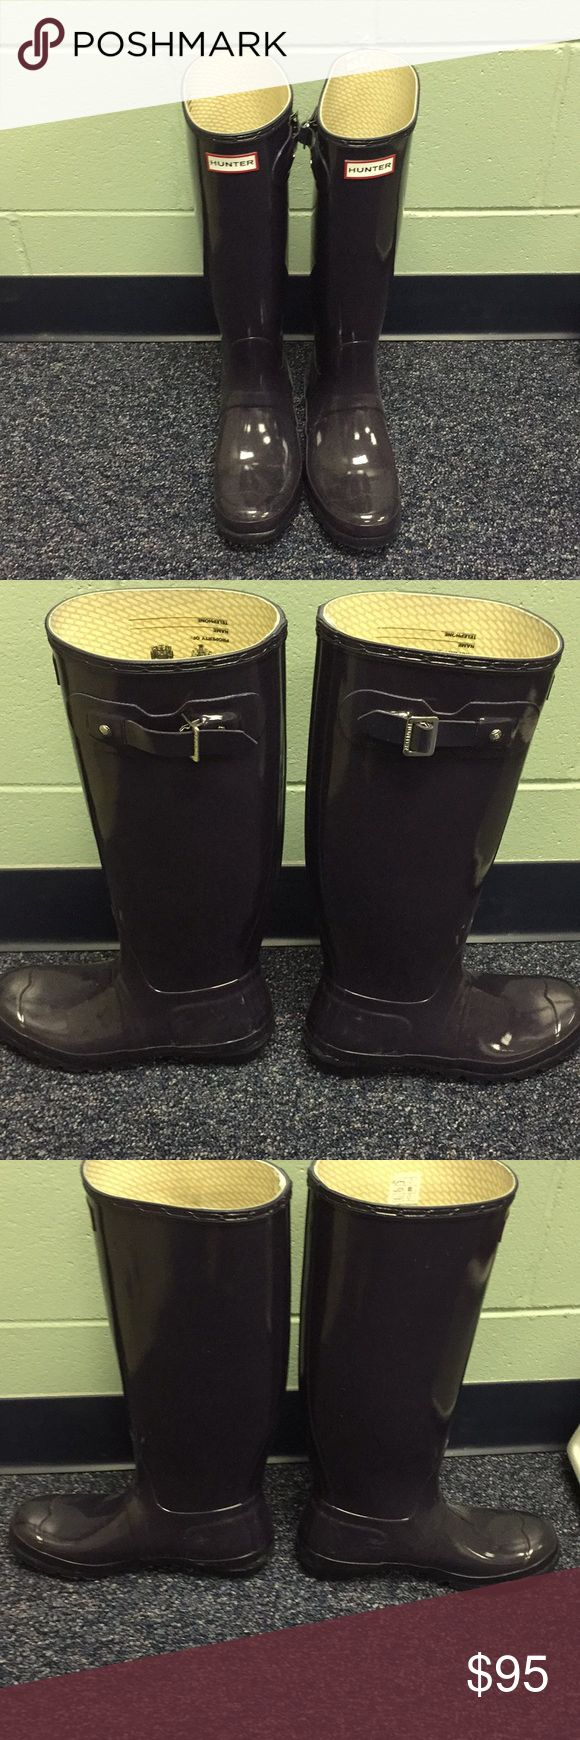 Dark Purple Hunter Boots A classic pair of Hunter boots in a dark purple color. Only worn a few times. Hunter Boots Shoes Winter & Rain Boots